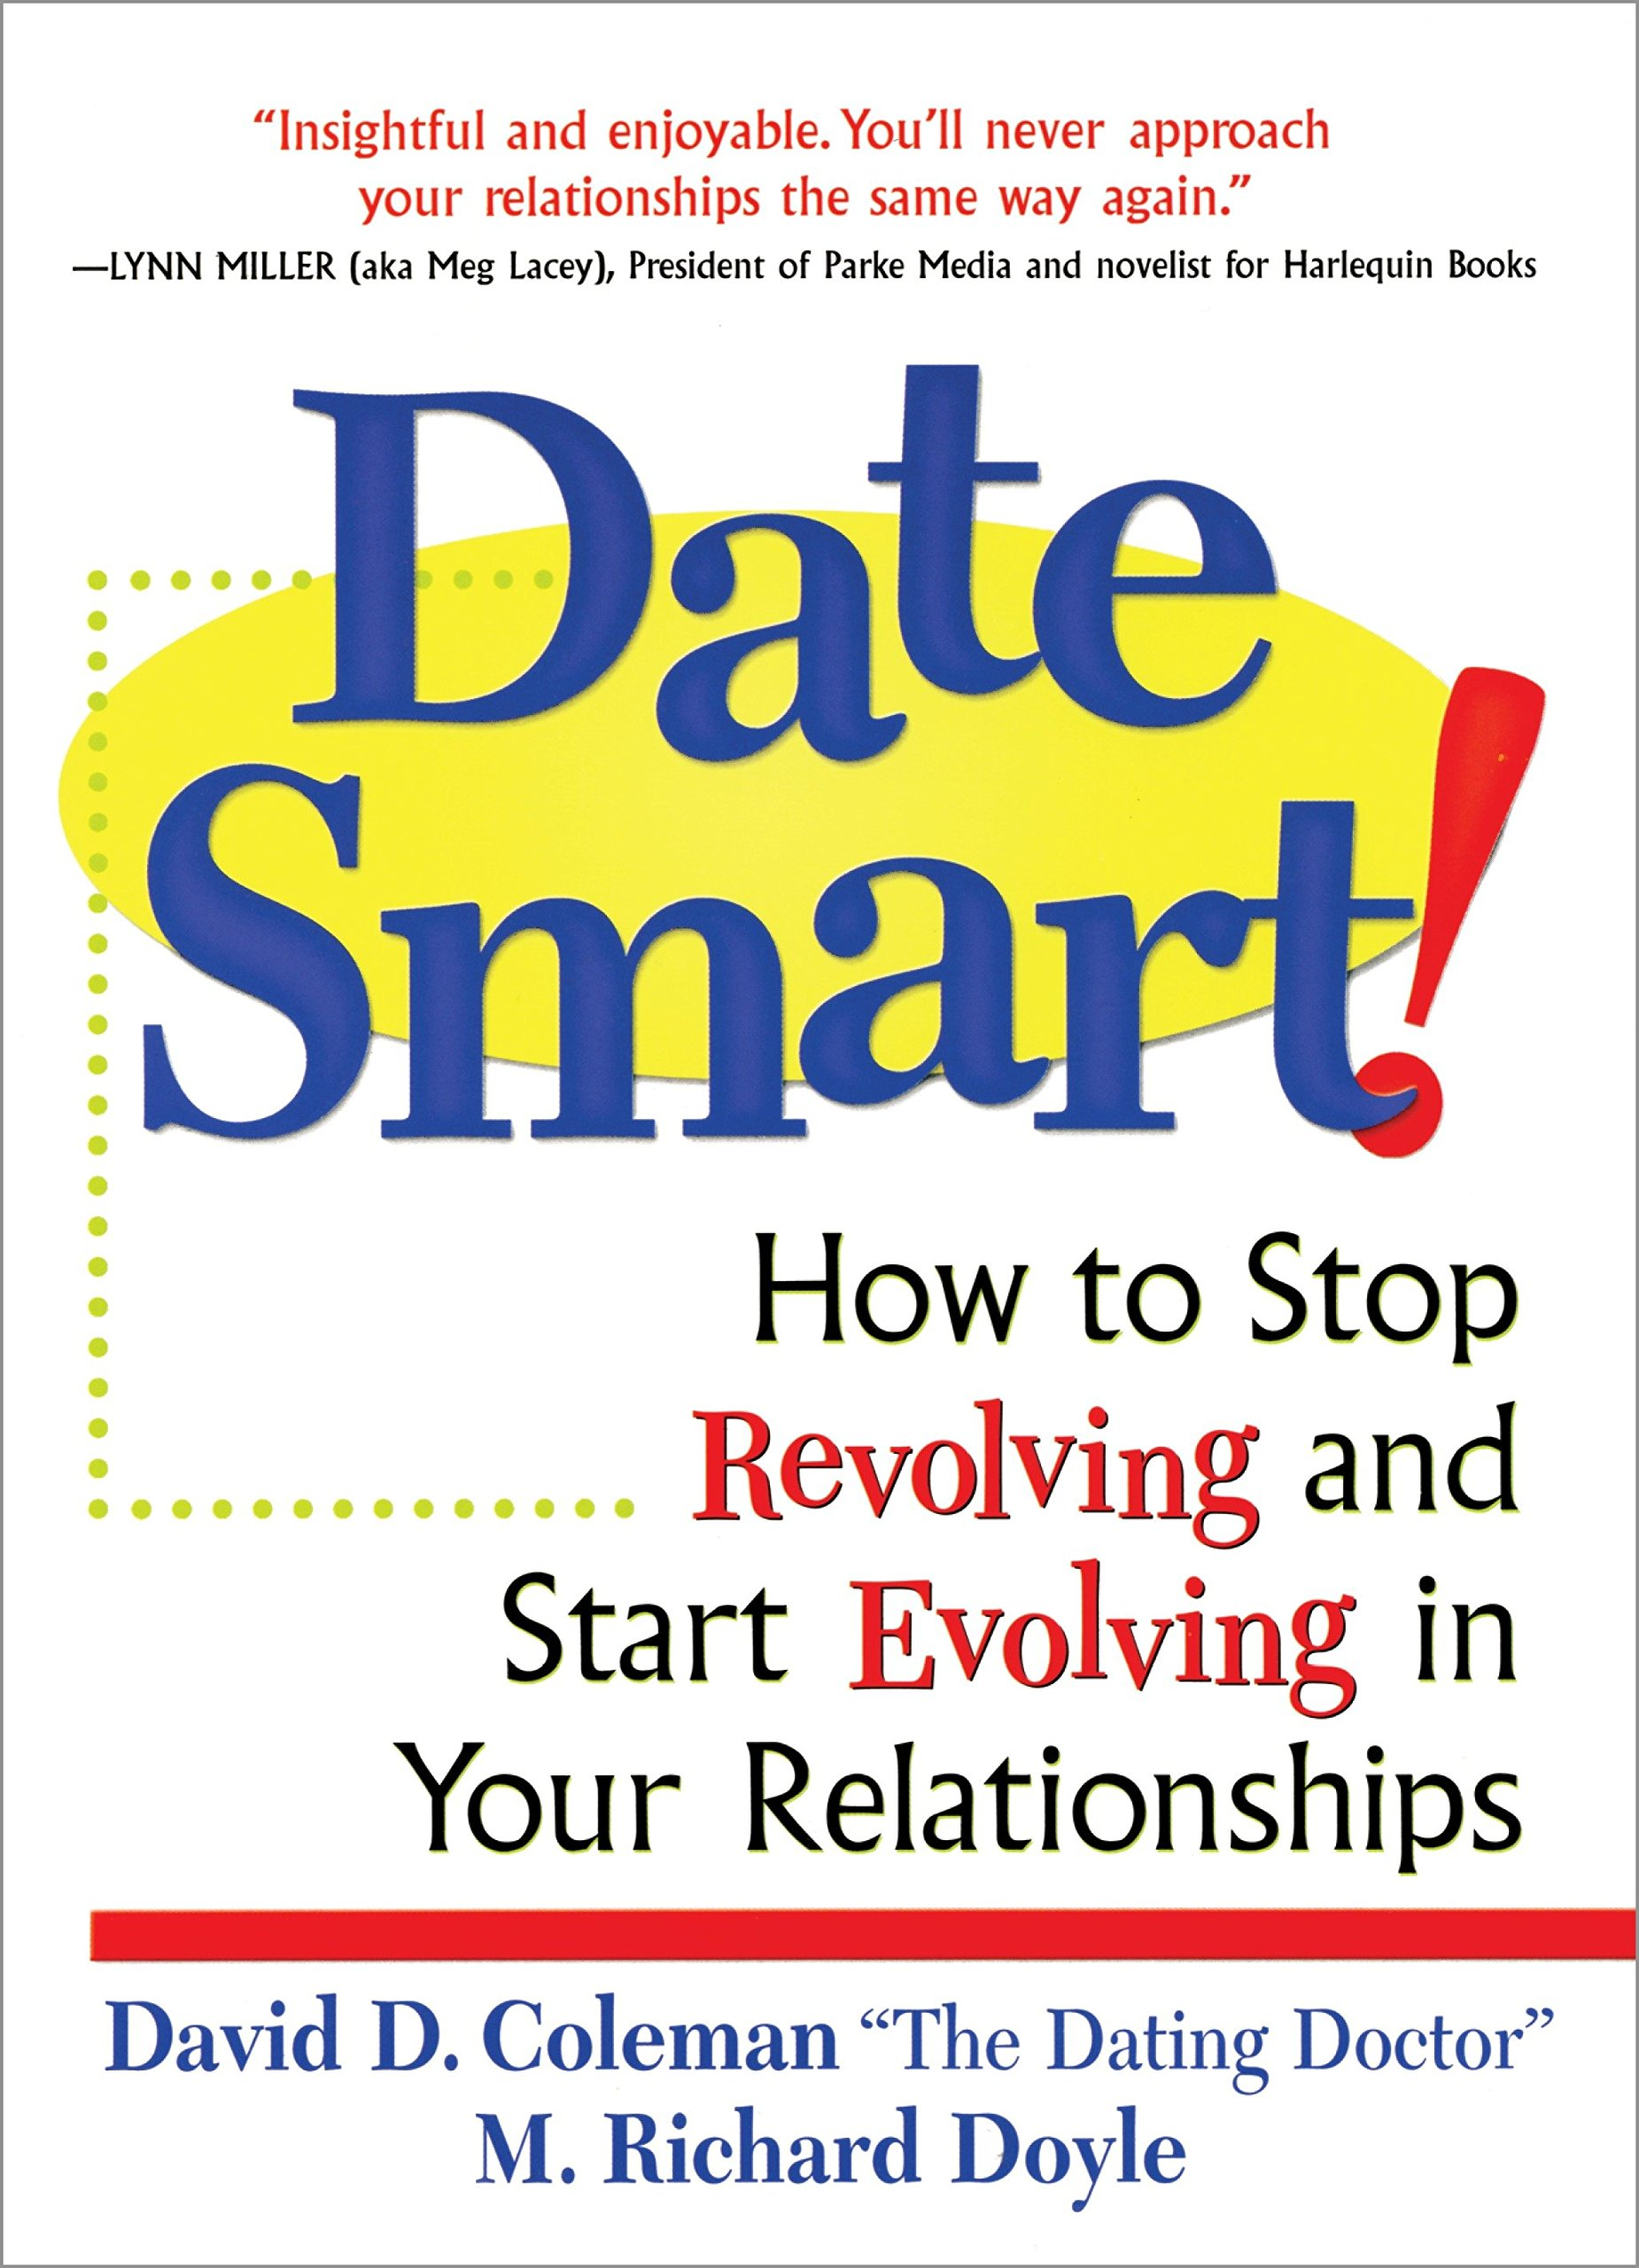 5 reasons to stop dating